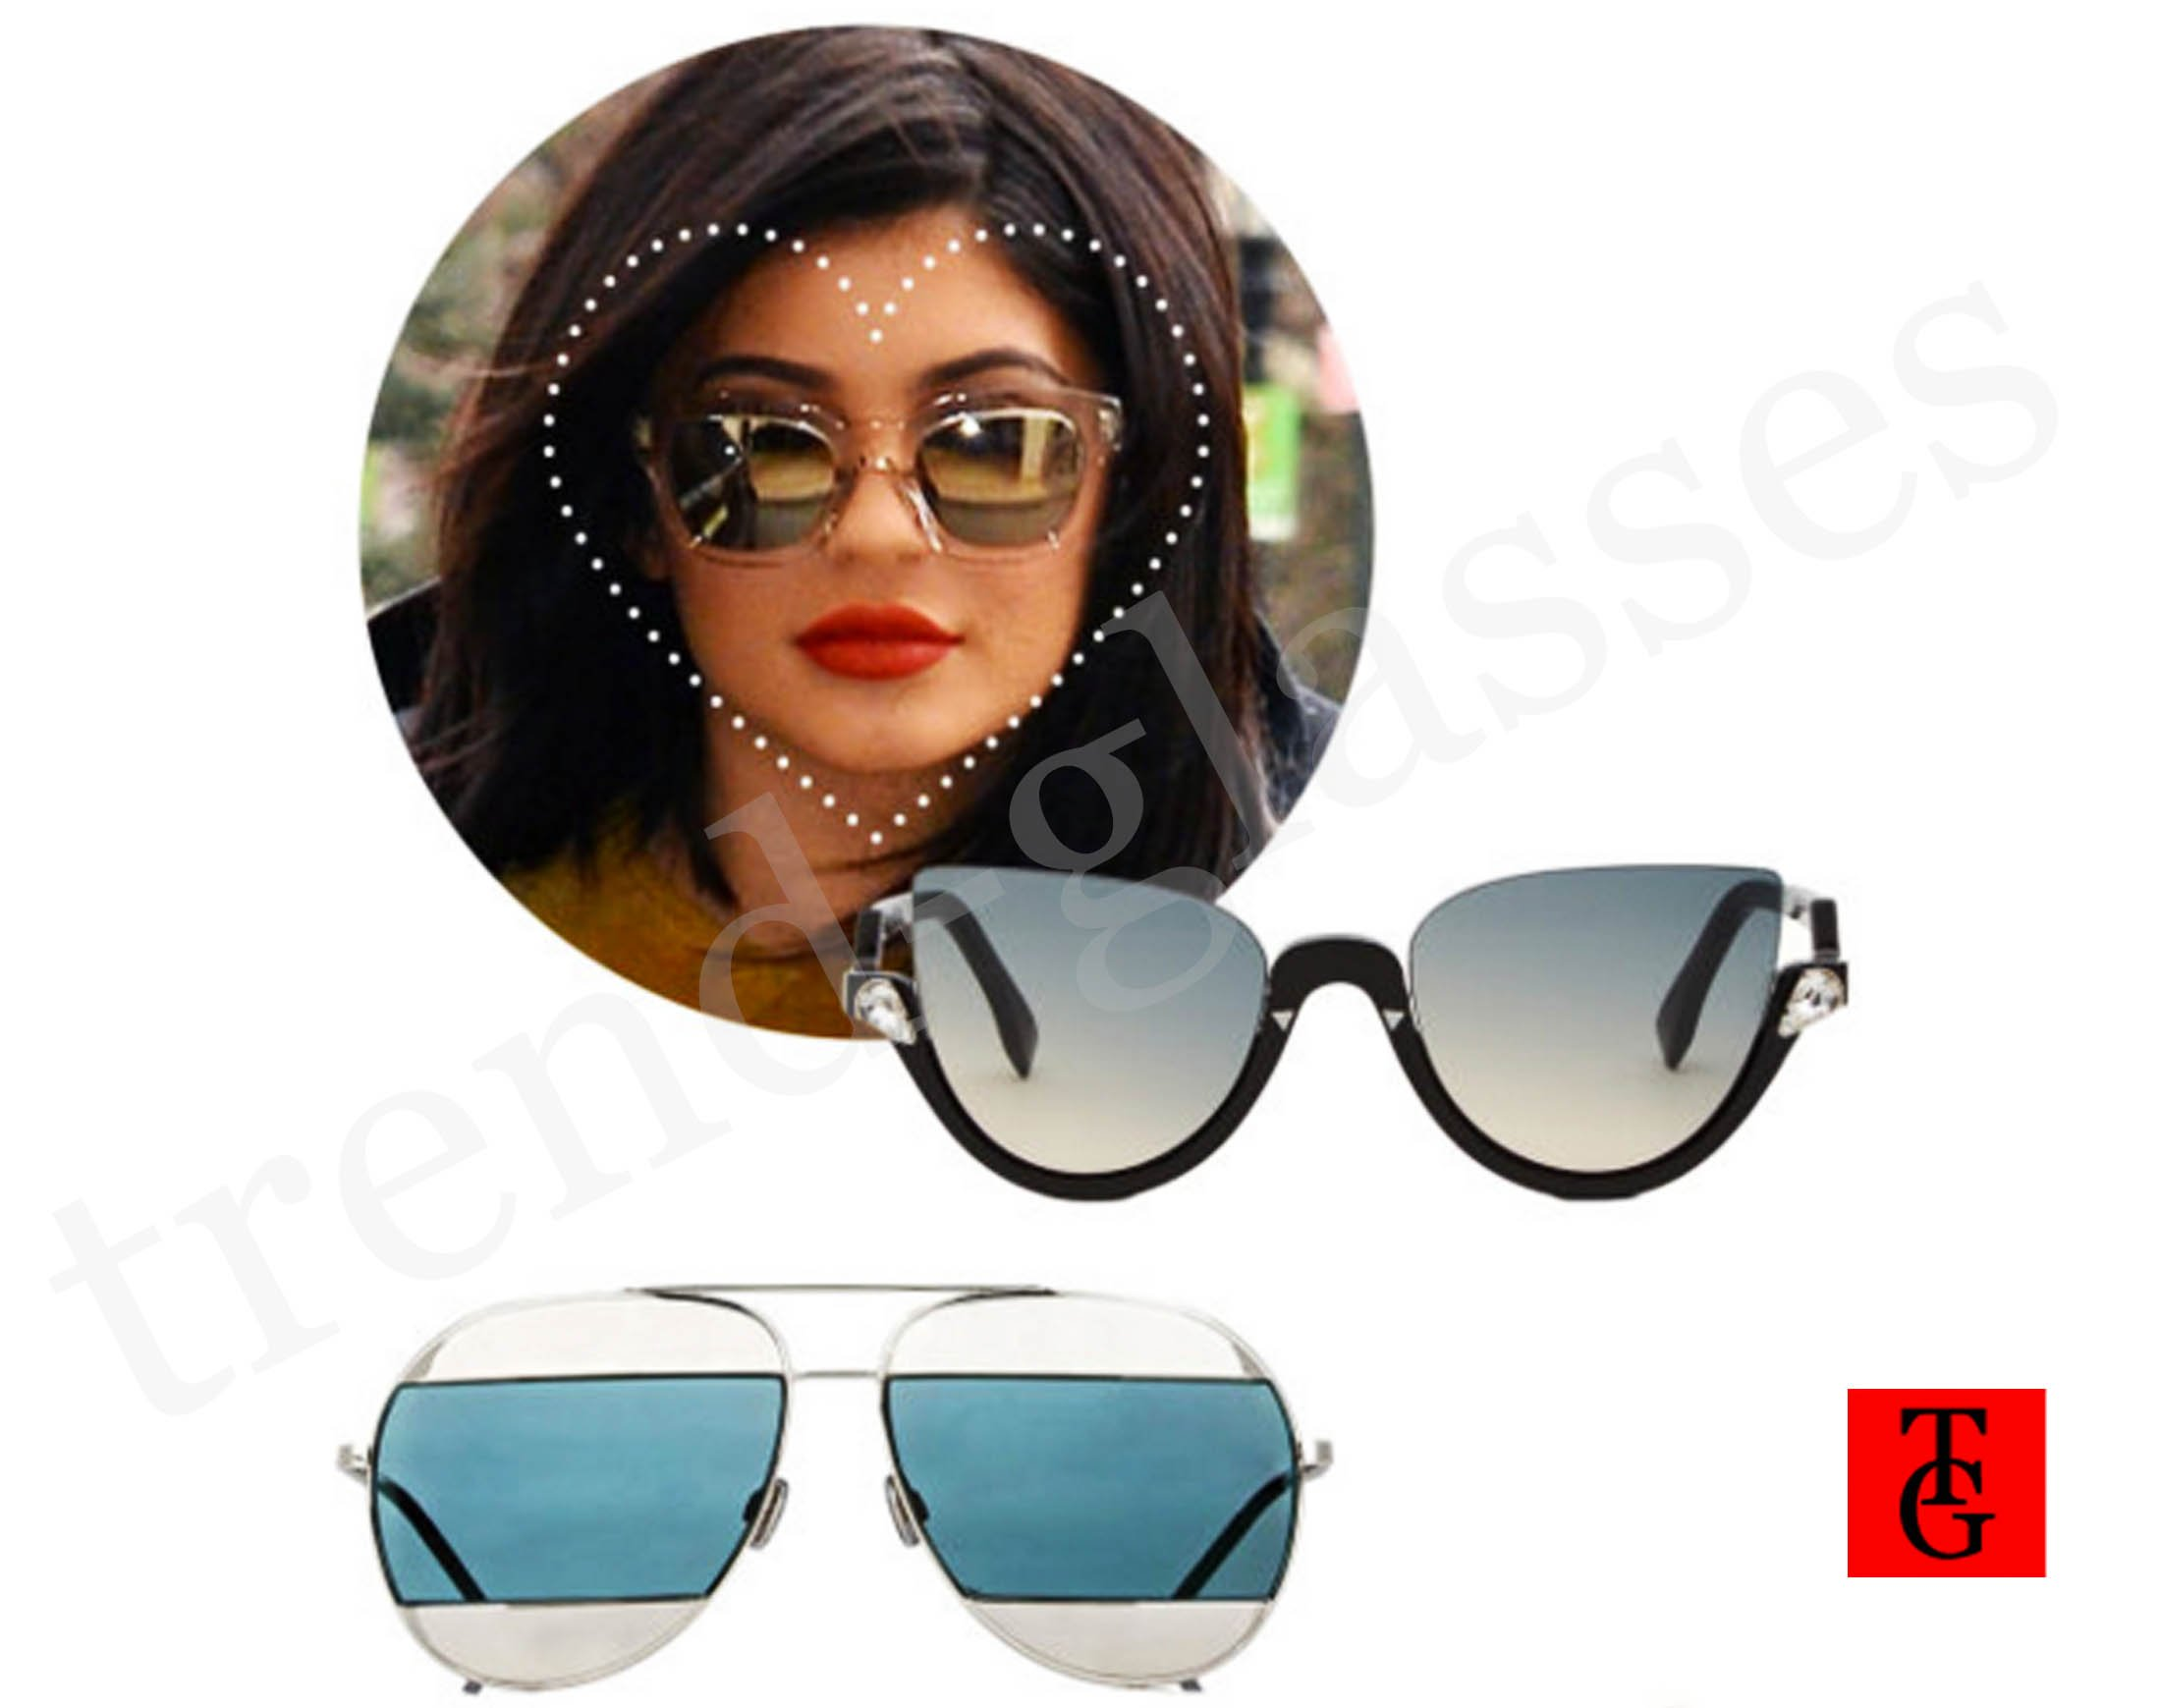 http://trend-glasses.ru/images/upload/ПРИМоооогр877ЕР.jpg